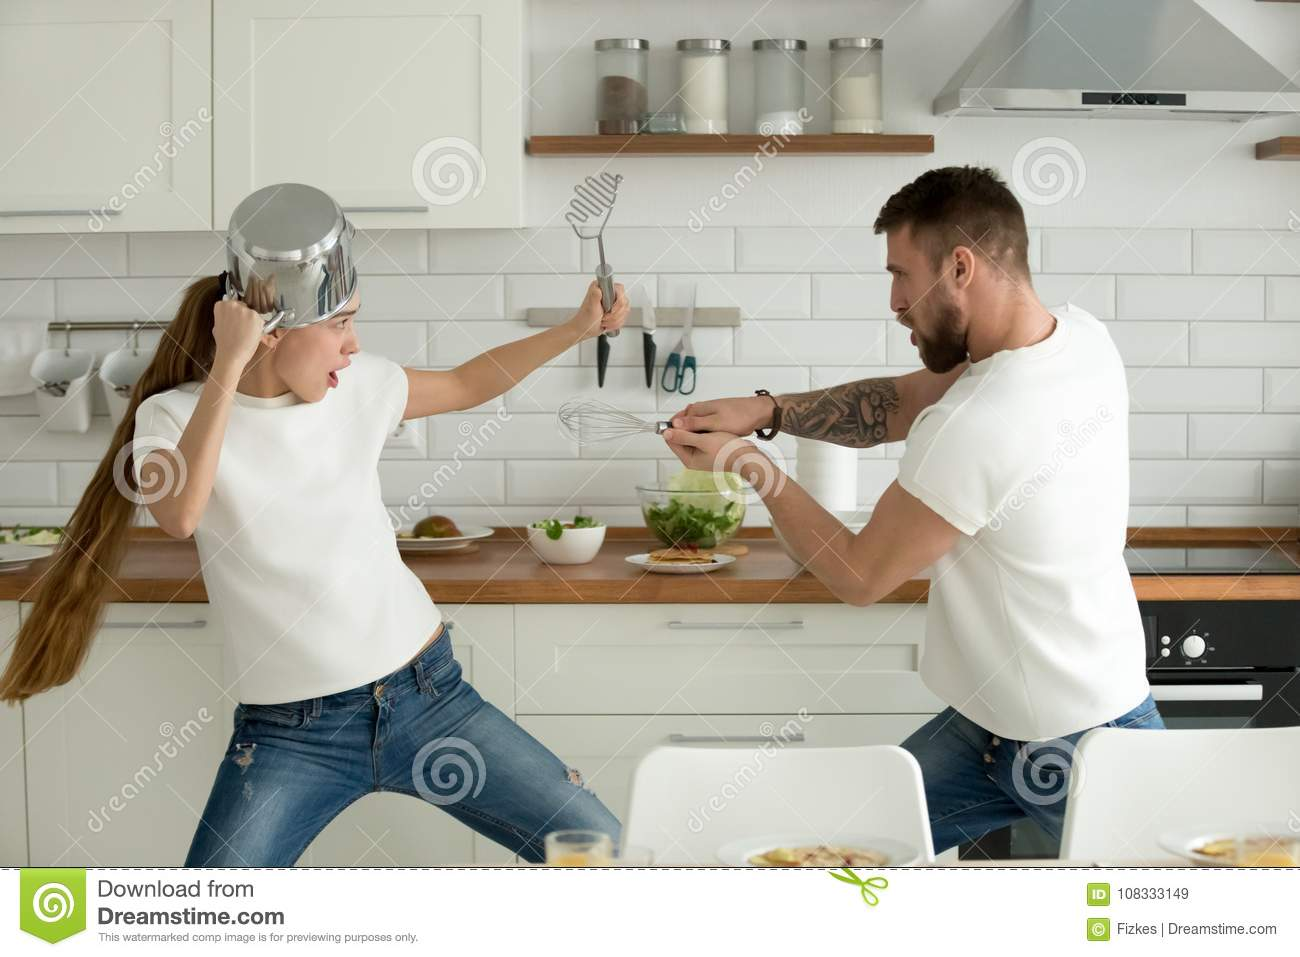 Funny Couple Having Fun Fighting With Kitchen Utensils